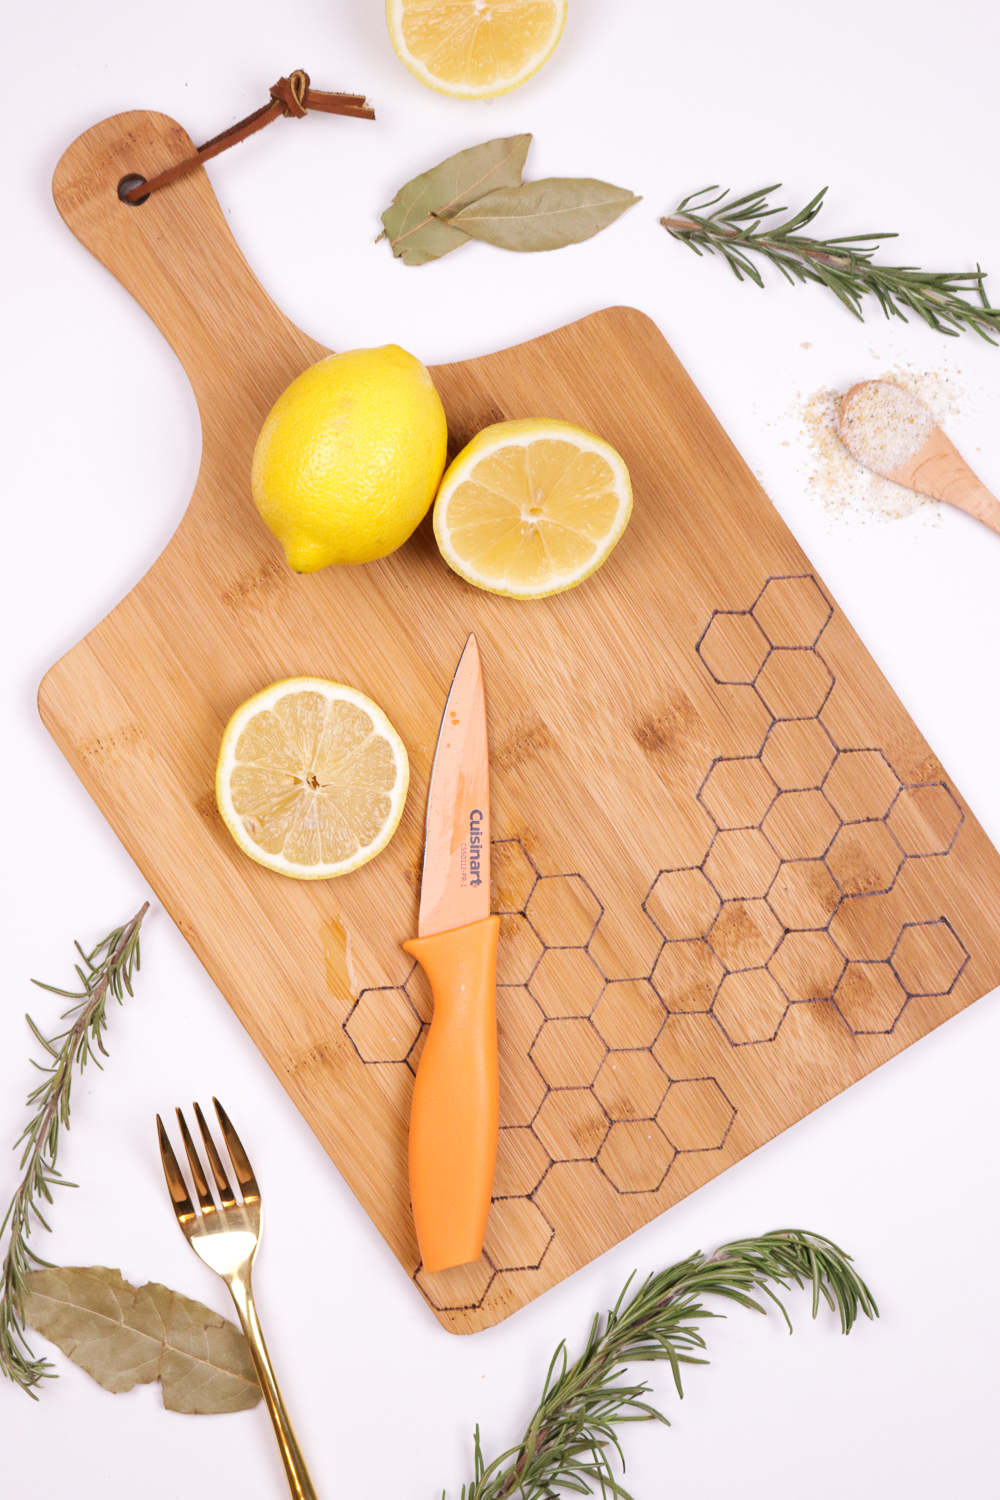 diy-honeycomb-wood-burned-cutting-board-5